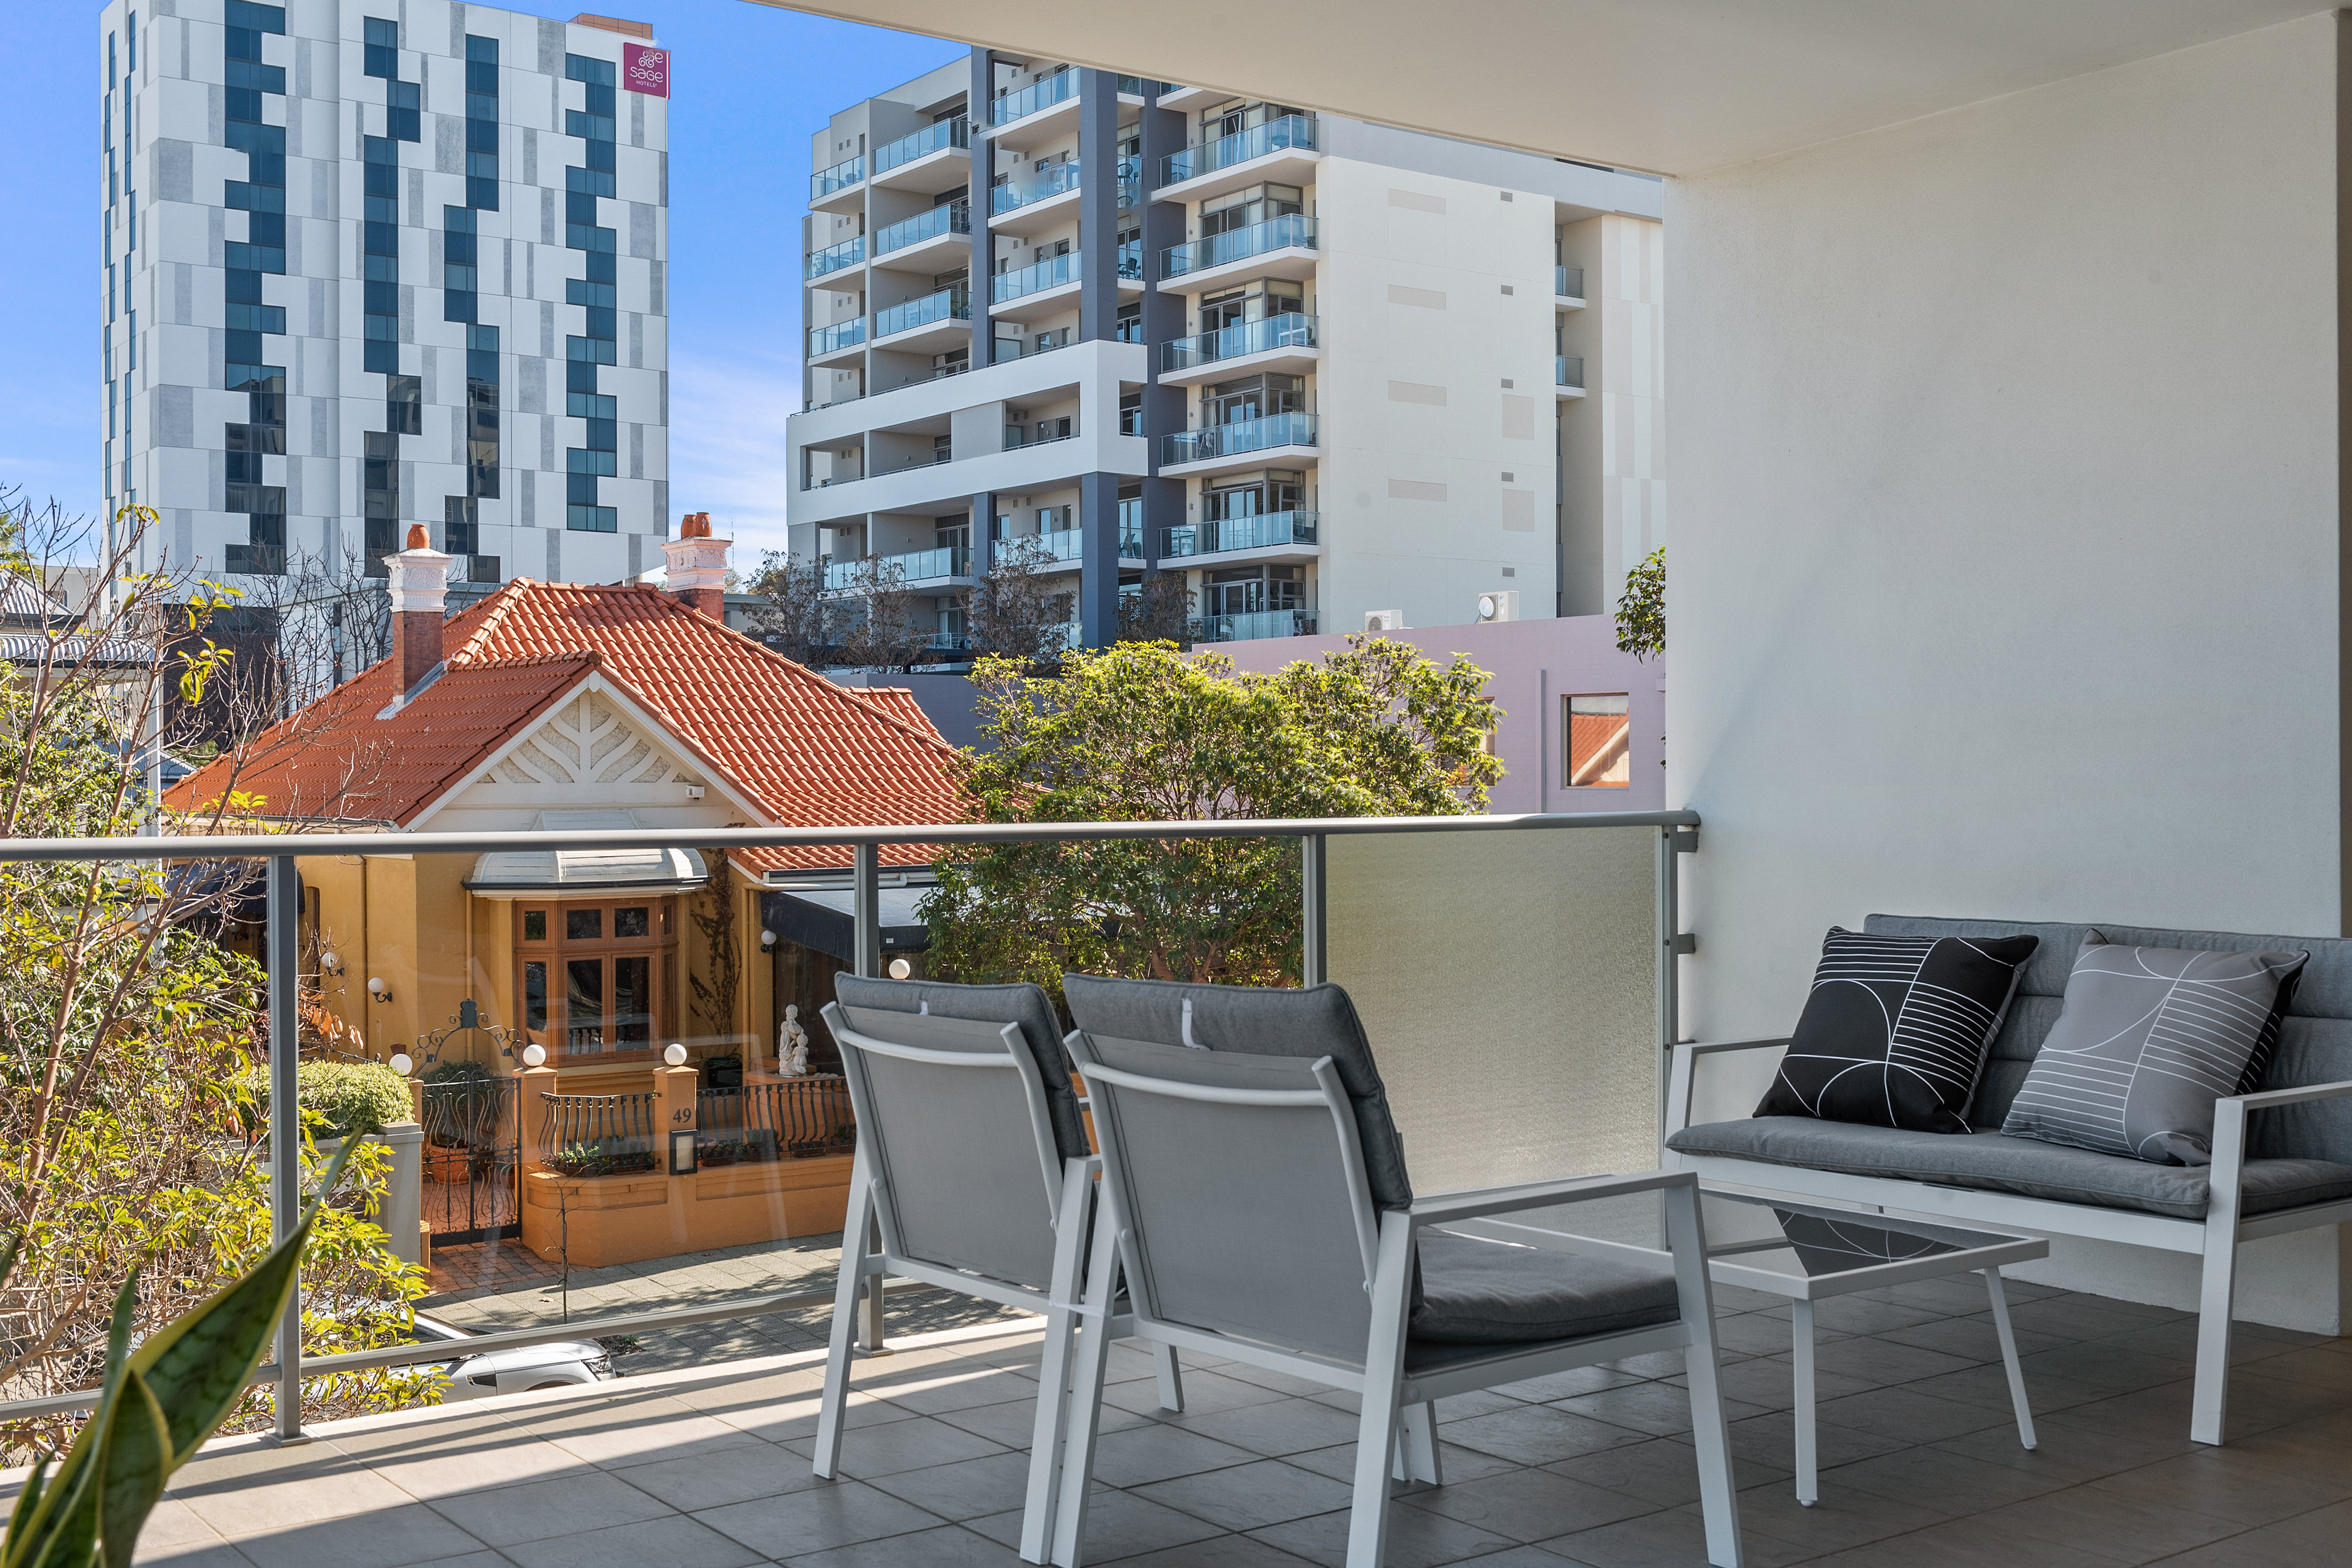 PRINT 202 48 Outram St, West Perth 24